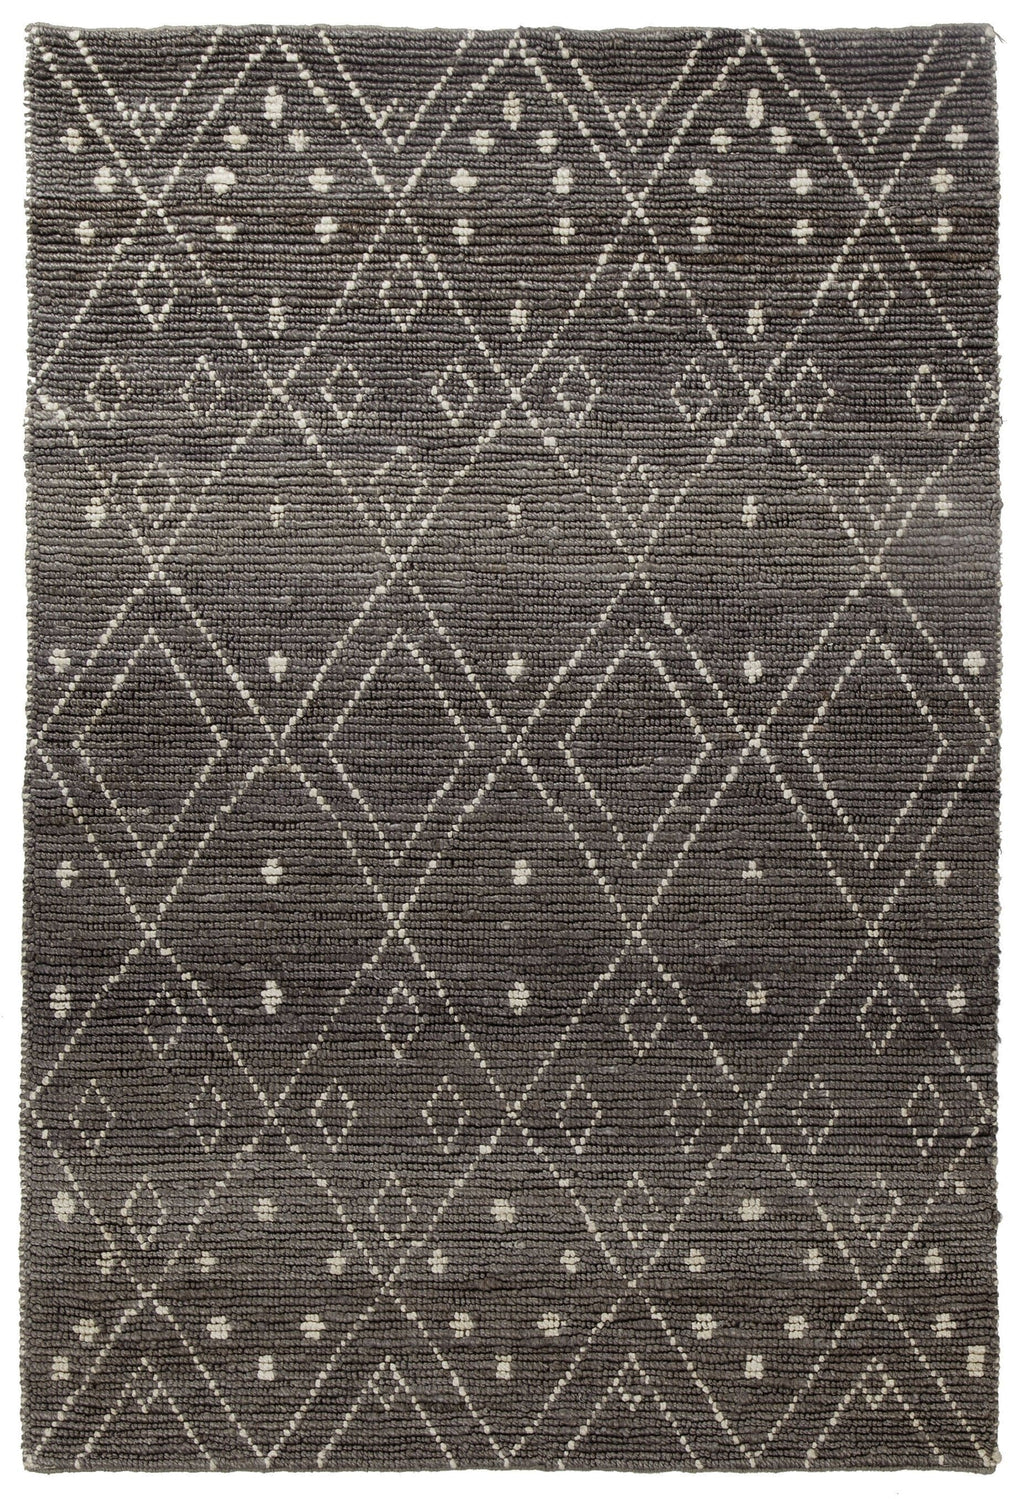 Kabarnet Tribal Jute Floor Rug